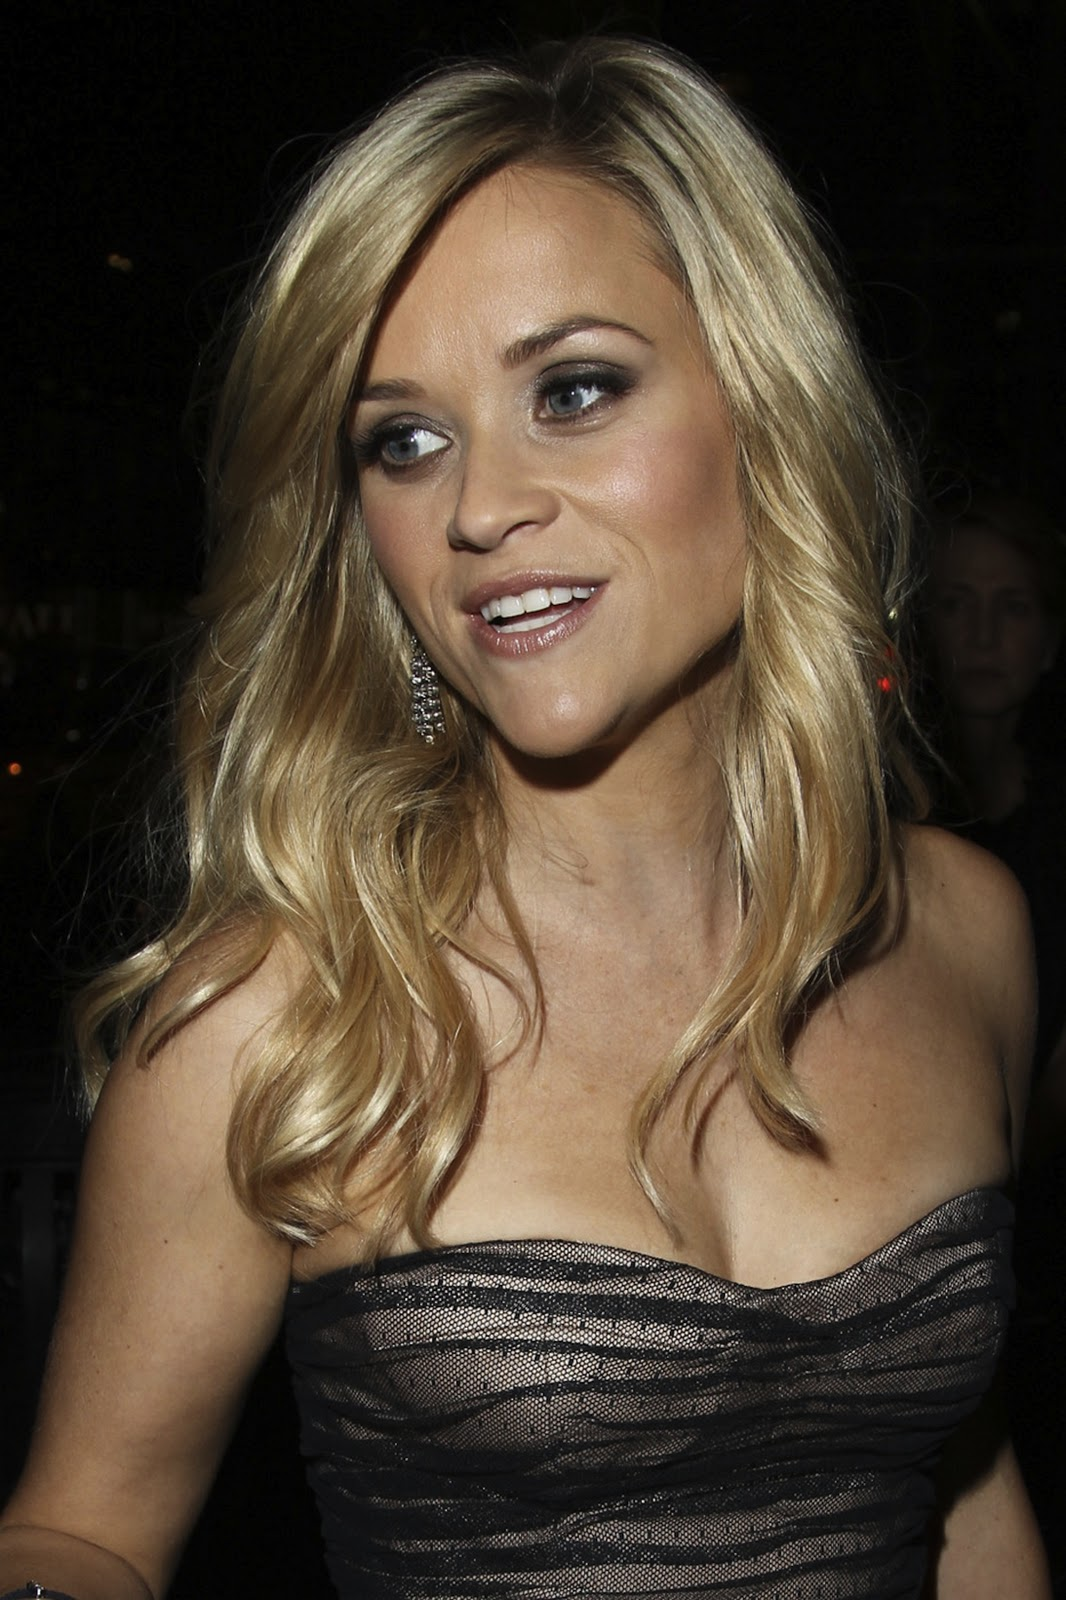 http://4.bp.blogspot.com/-eMxVzNGKkDg/TrKts1o7szI/AAAAAAAAC74/anWhM2Pu1i8/s1600/reese+witherspoon+hairstyles+%25282%2529.jpg